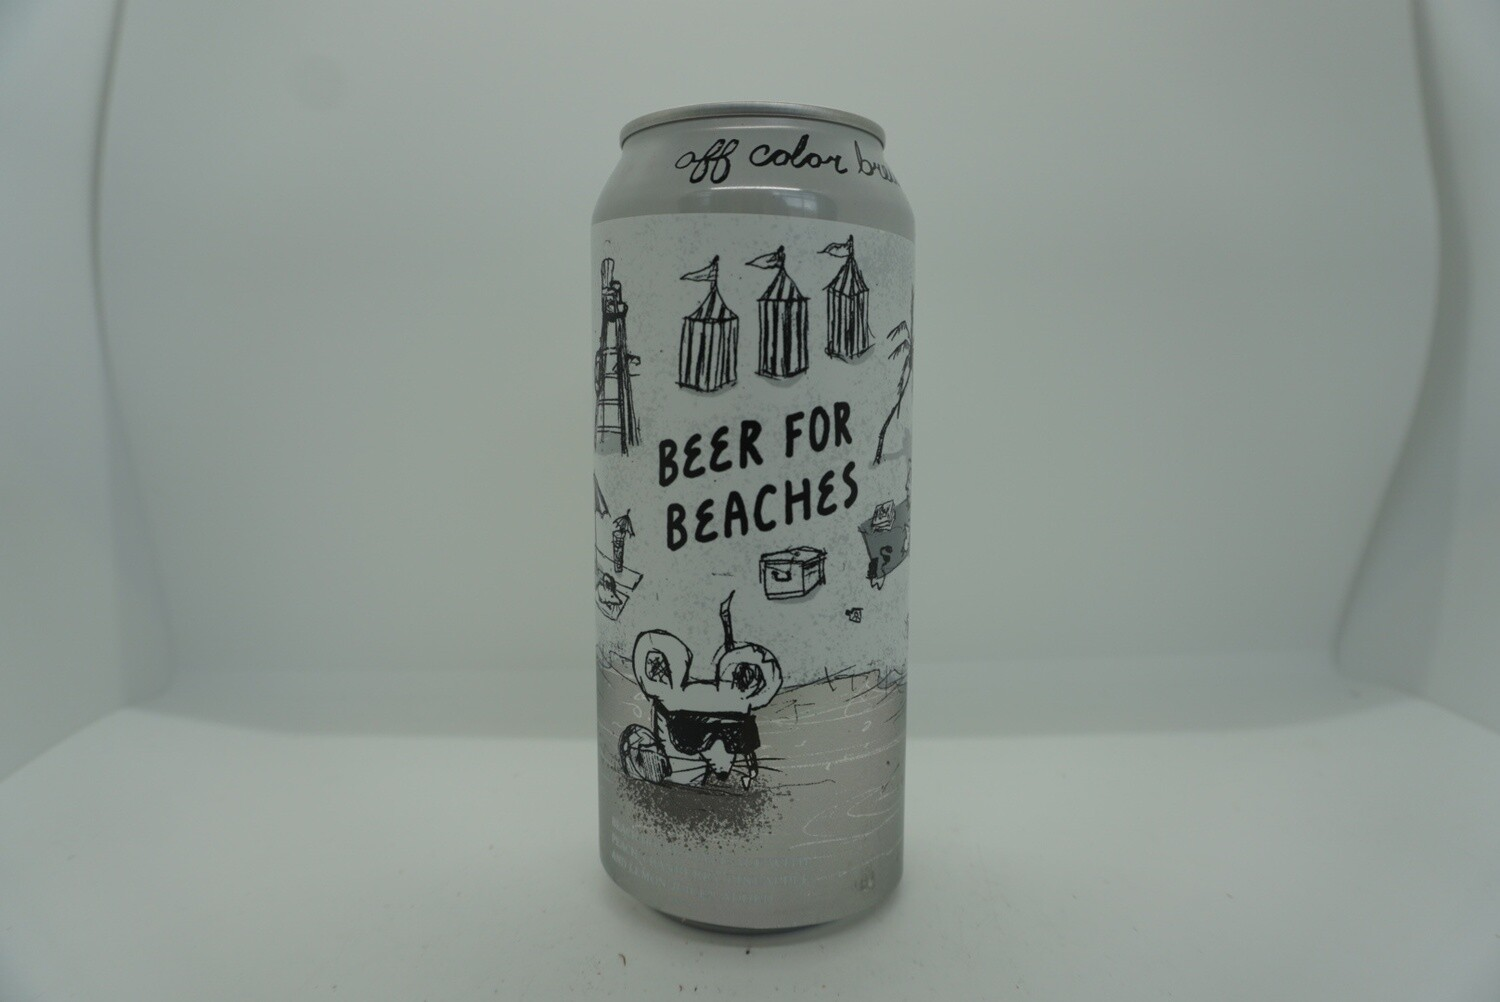 Off Color - Beer For Beaches - Saison - 6% ABV - 16oz Can